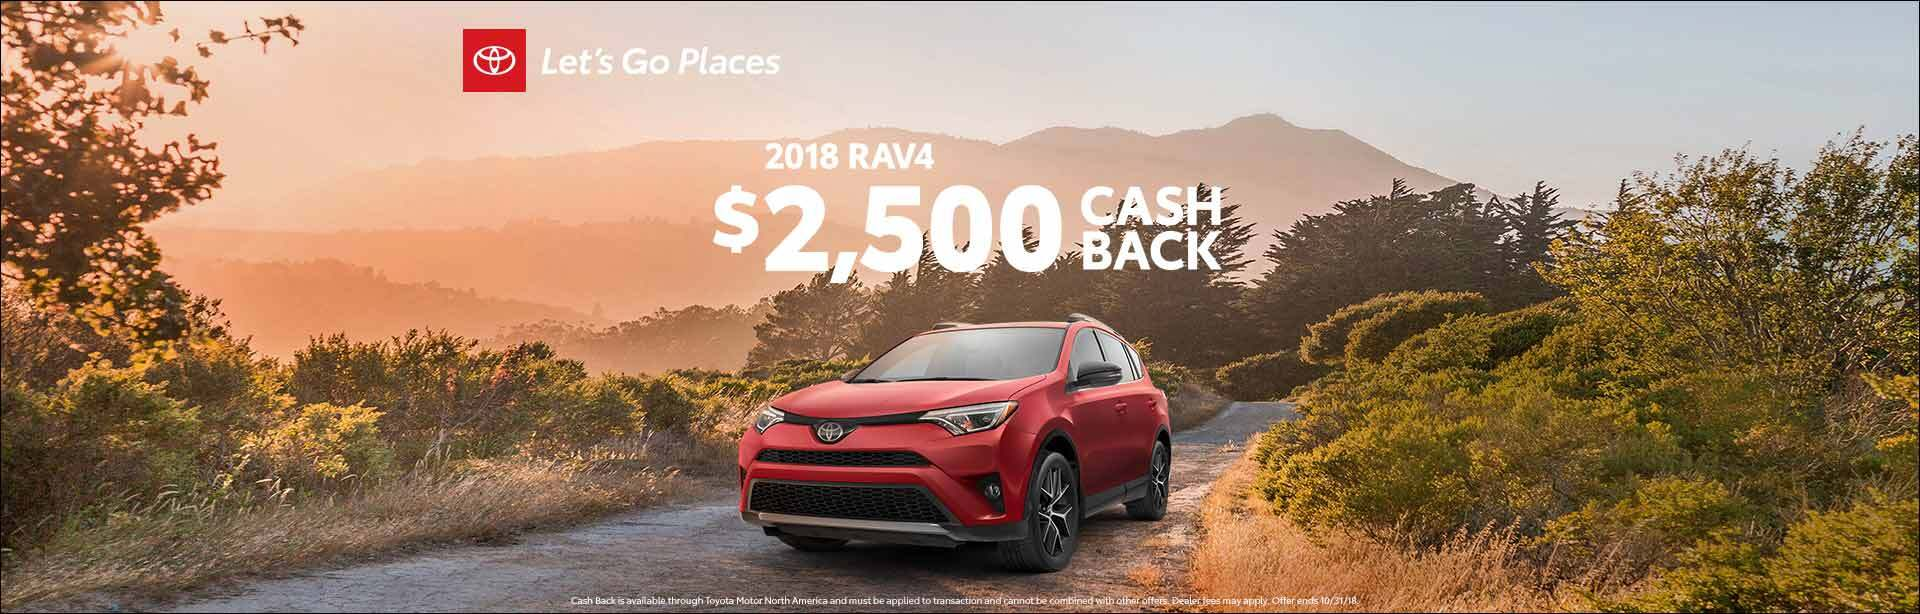 Rav4 Cash Back 2018